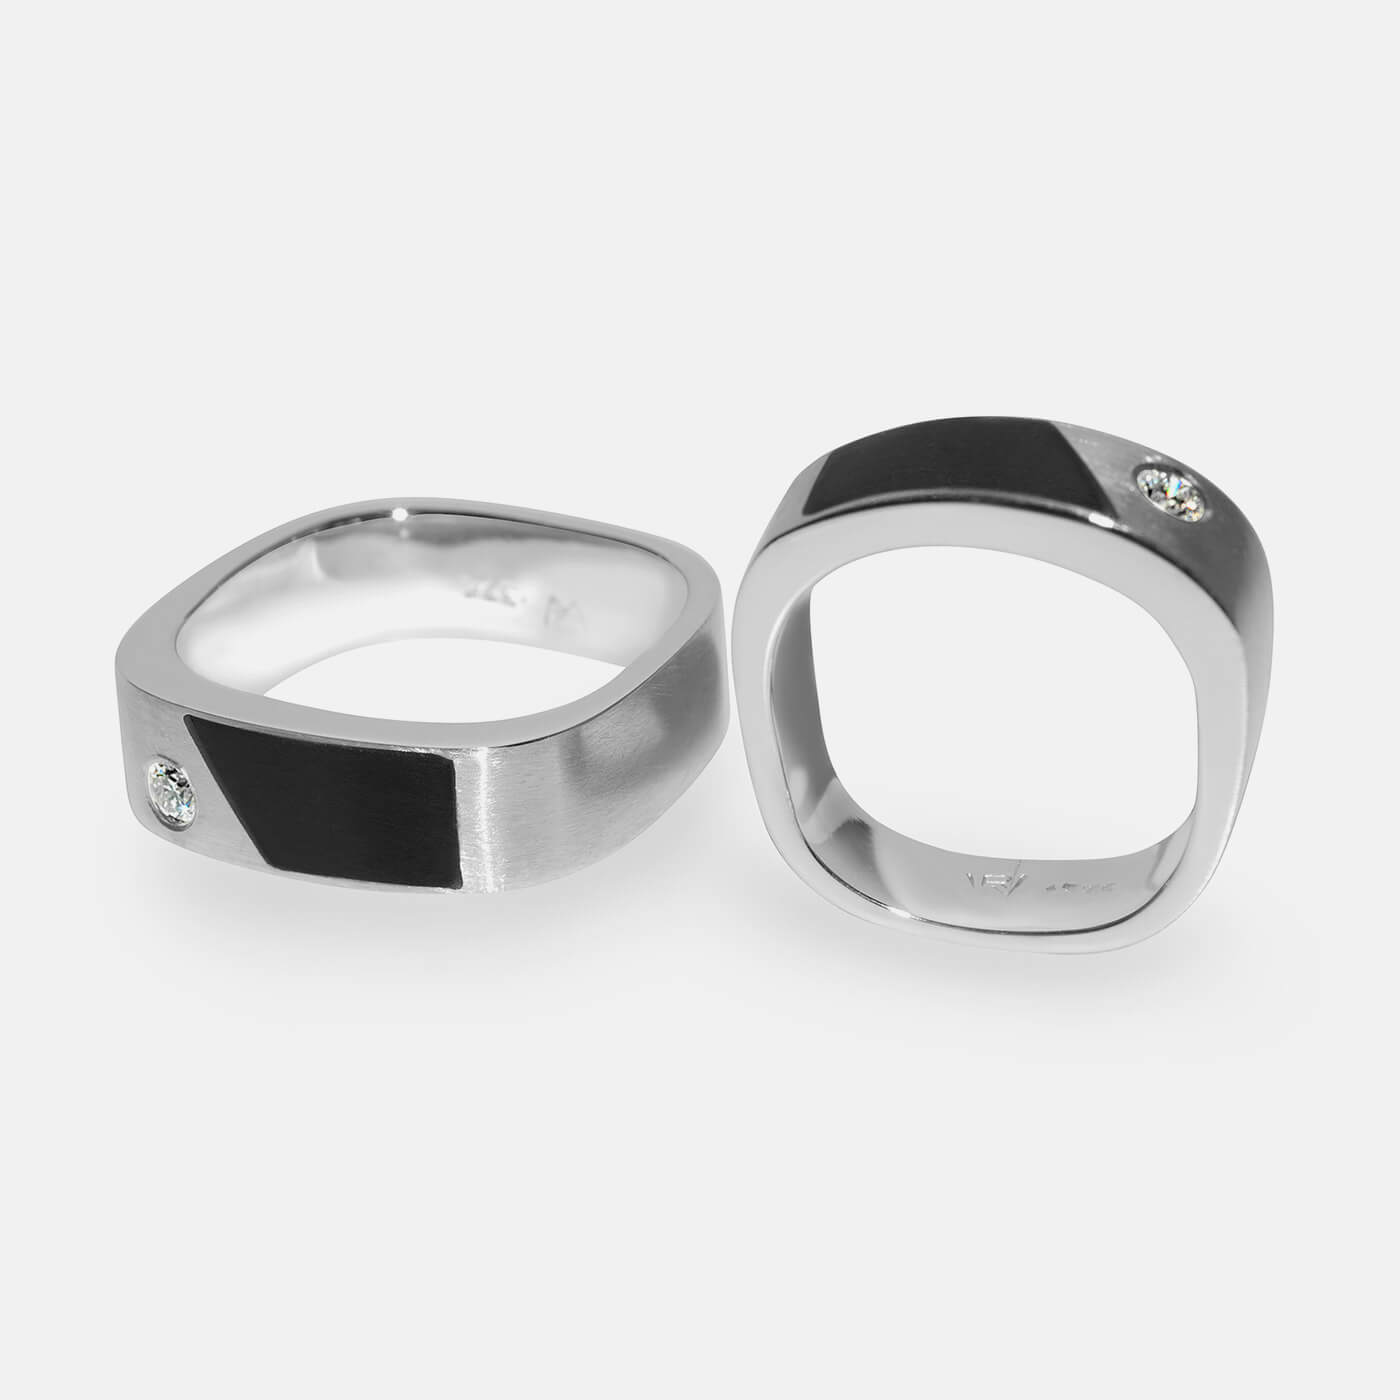 Geometric Shapes Wedding Ring